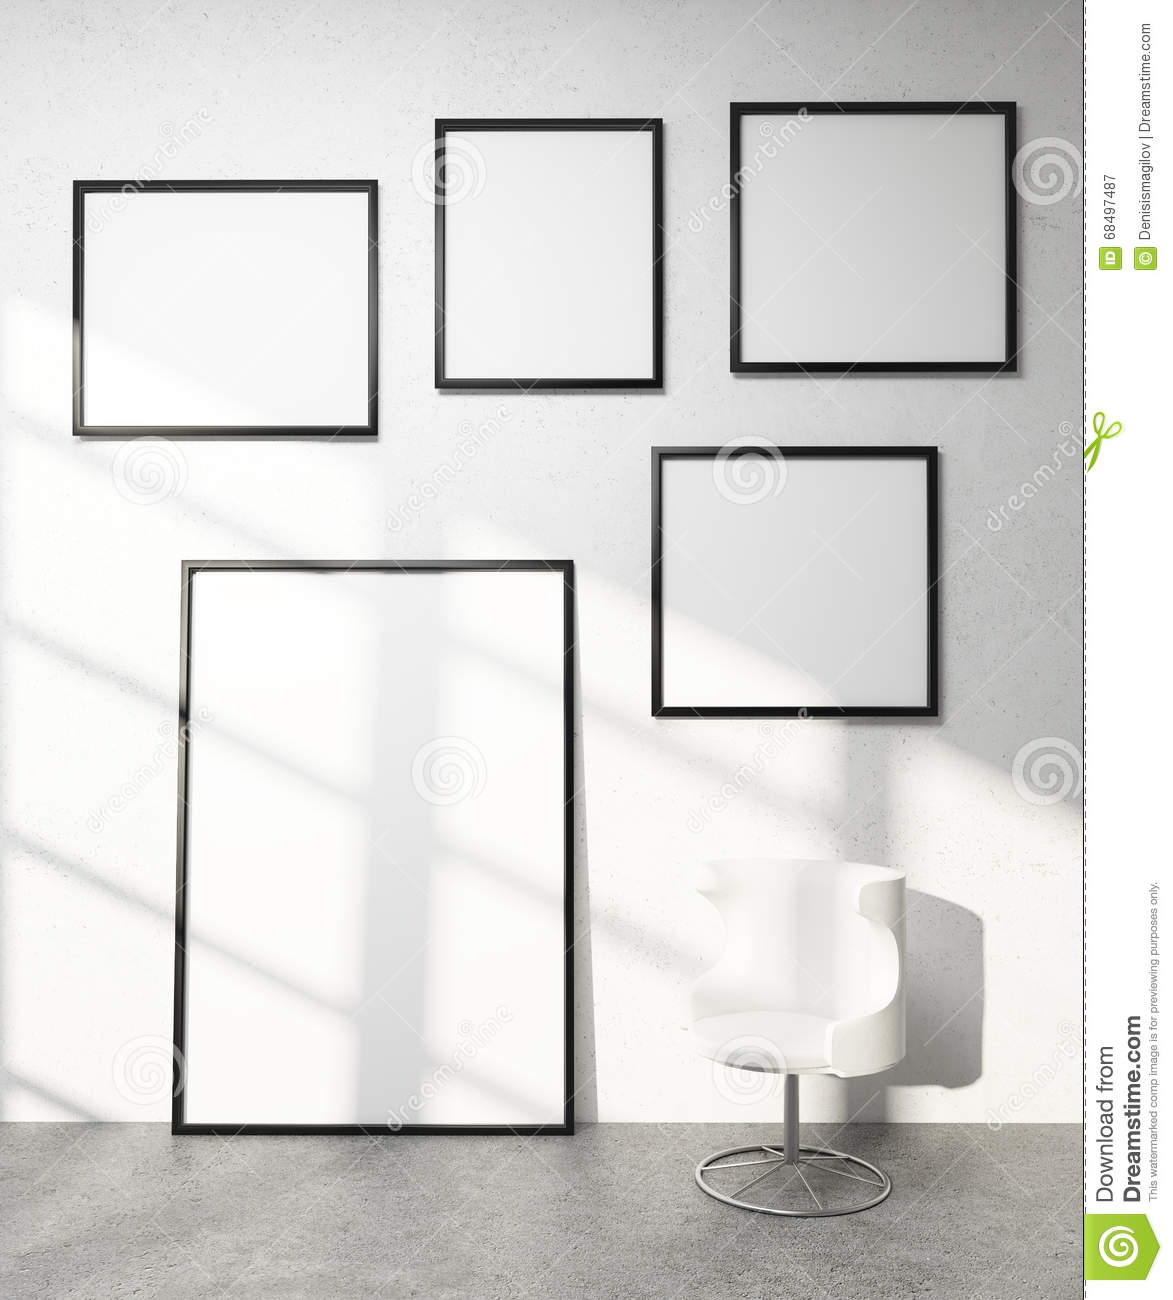 Frames On Wall five frames on wall stock illustration - image: 68497487